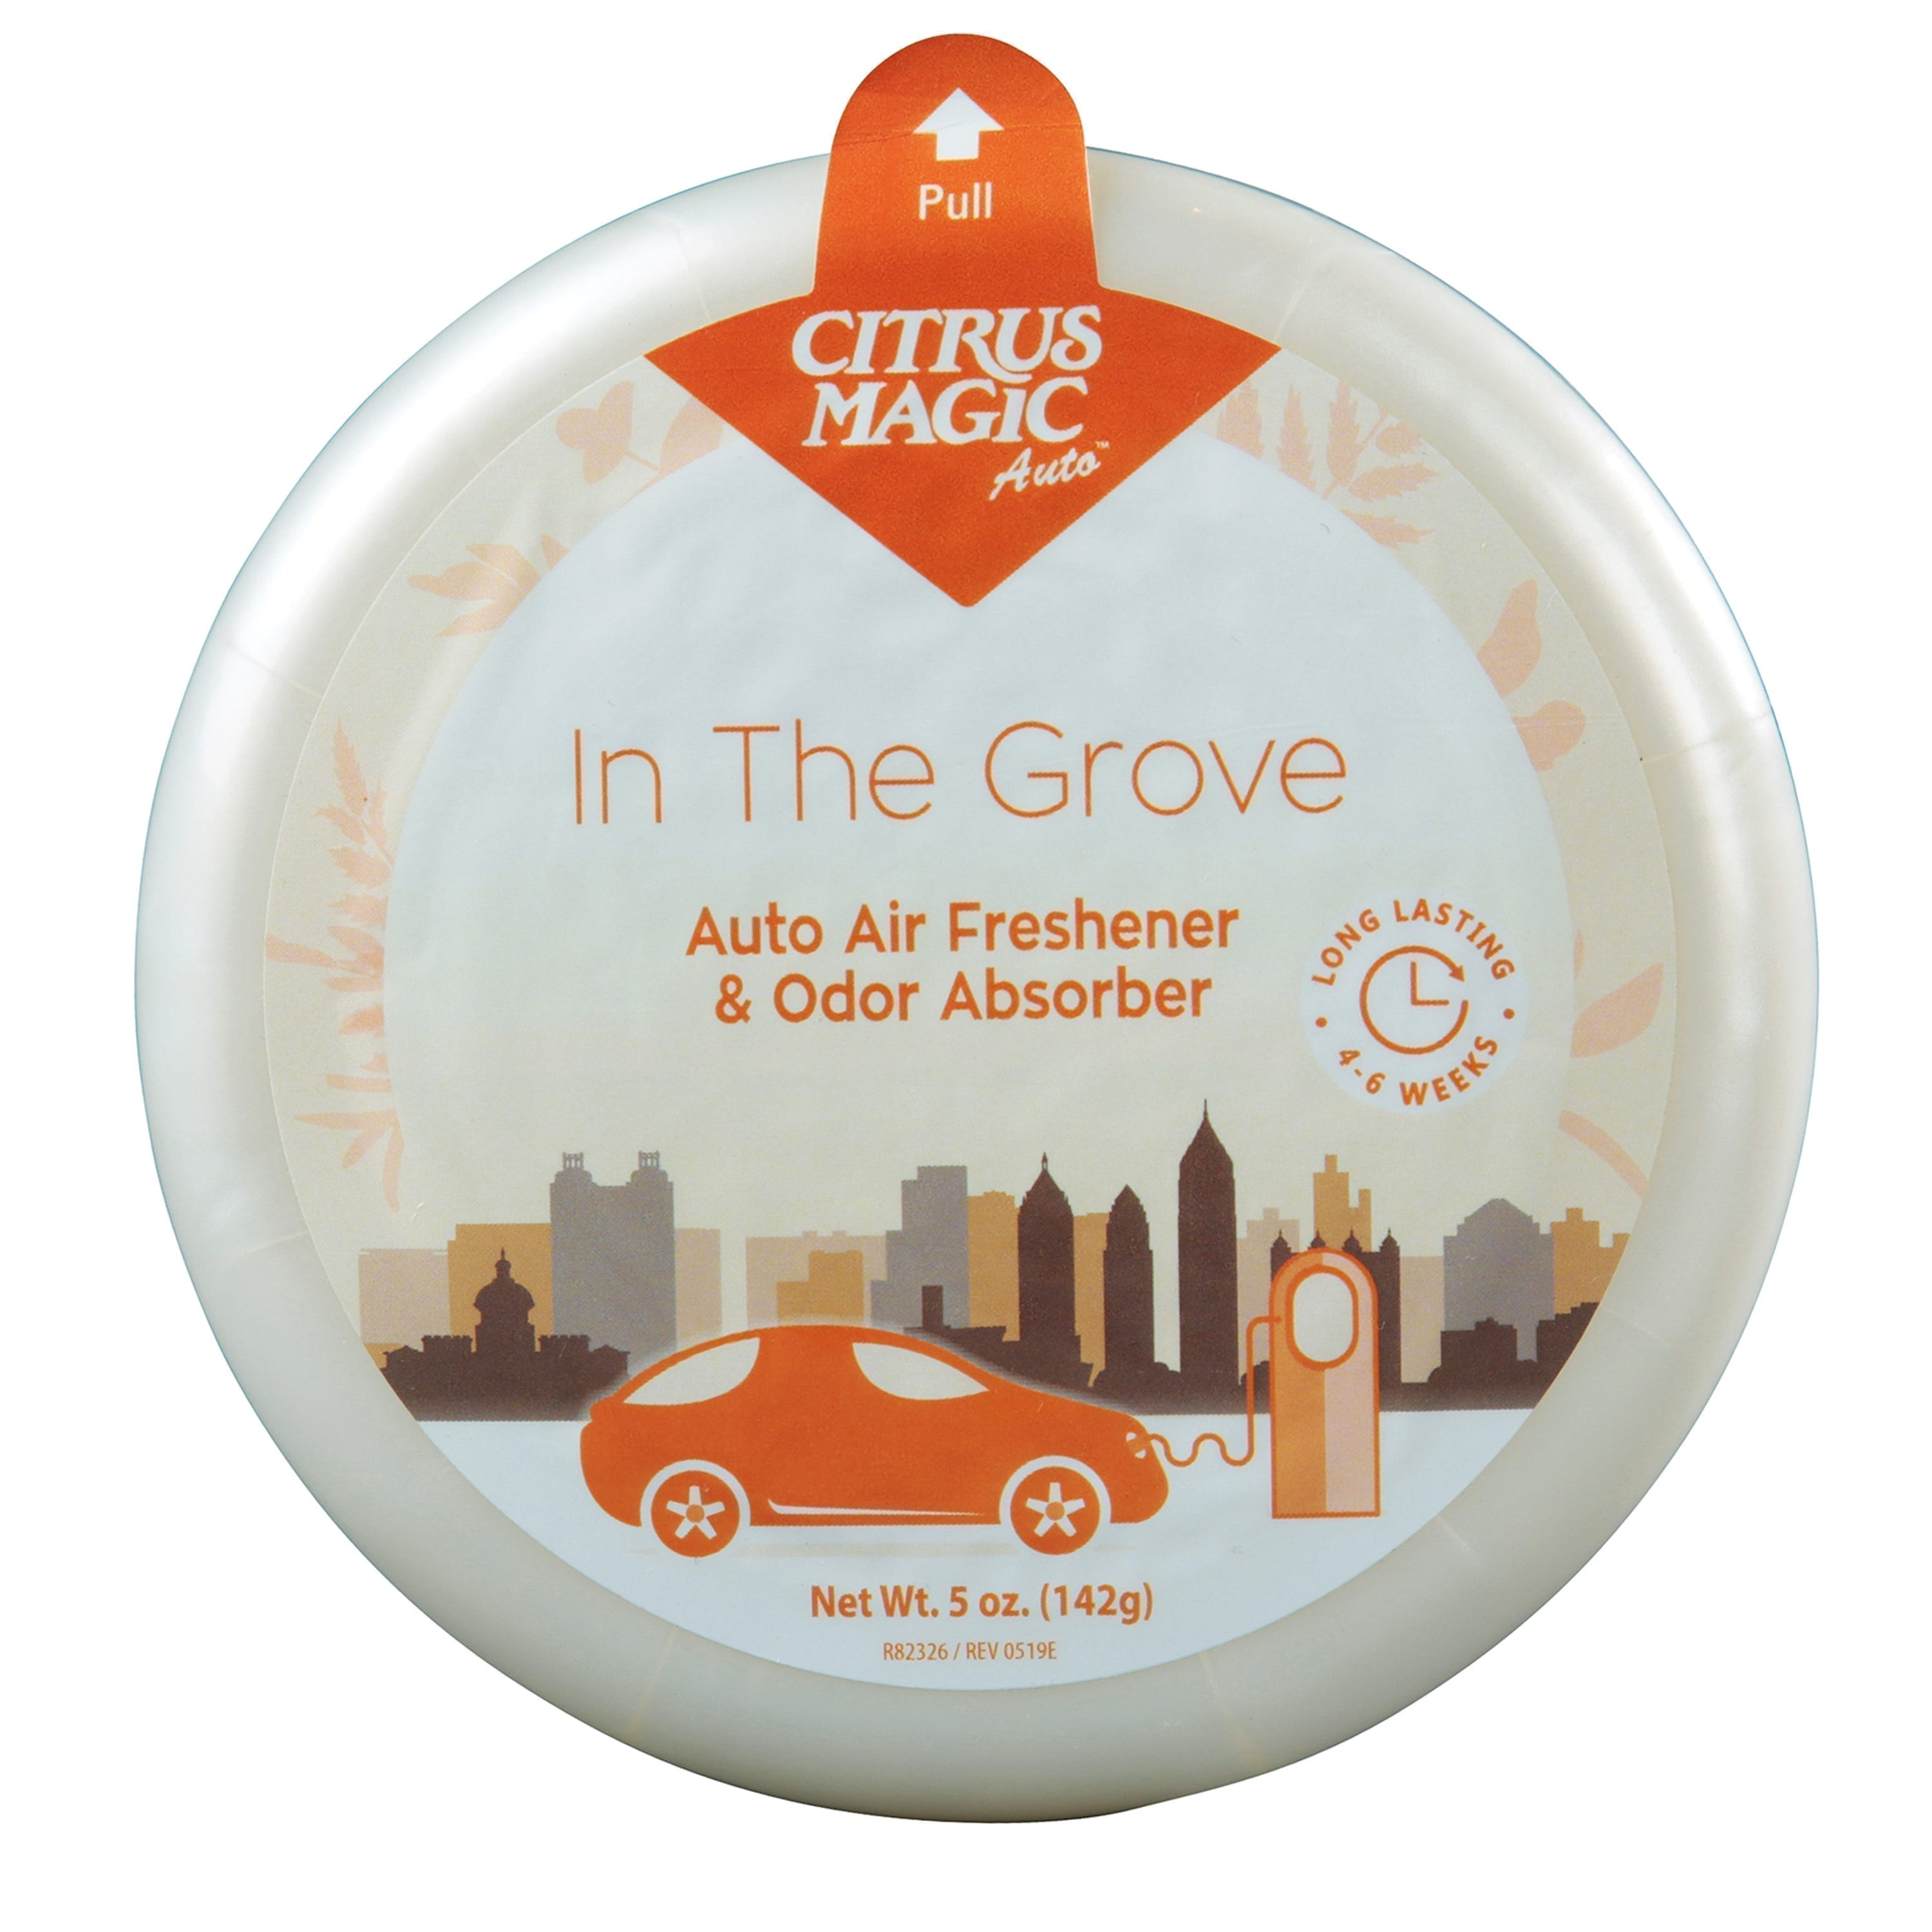 Citrus Magic Auto Odor Absorbing Solid Air Freshener, In the Grove